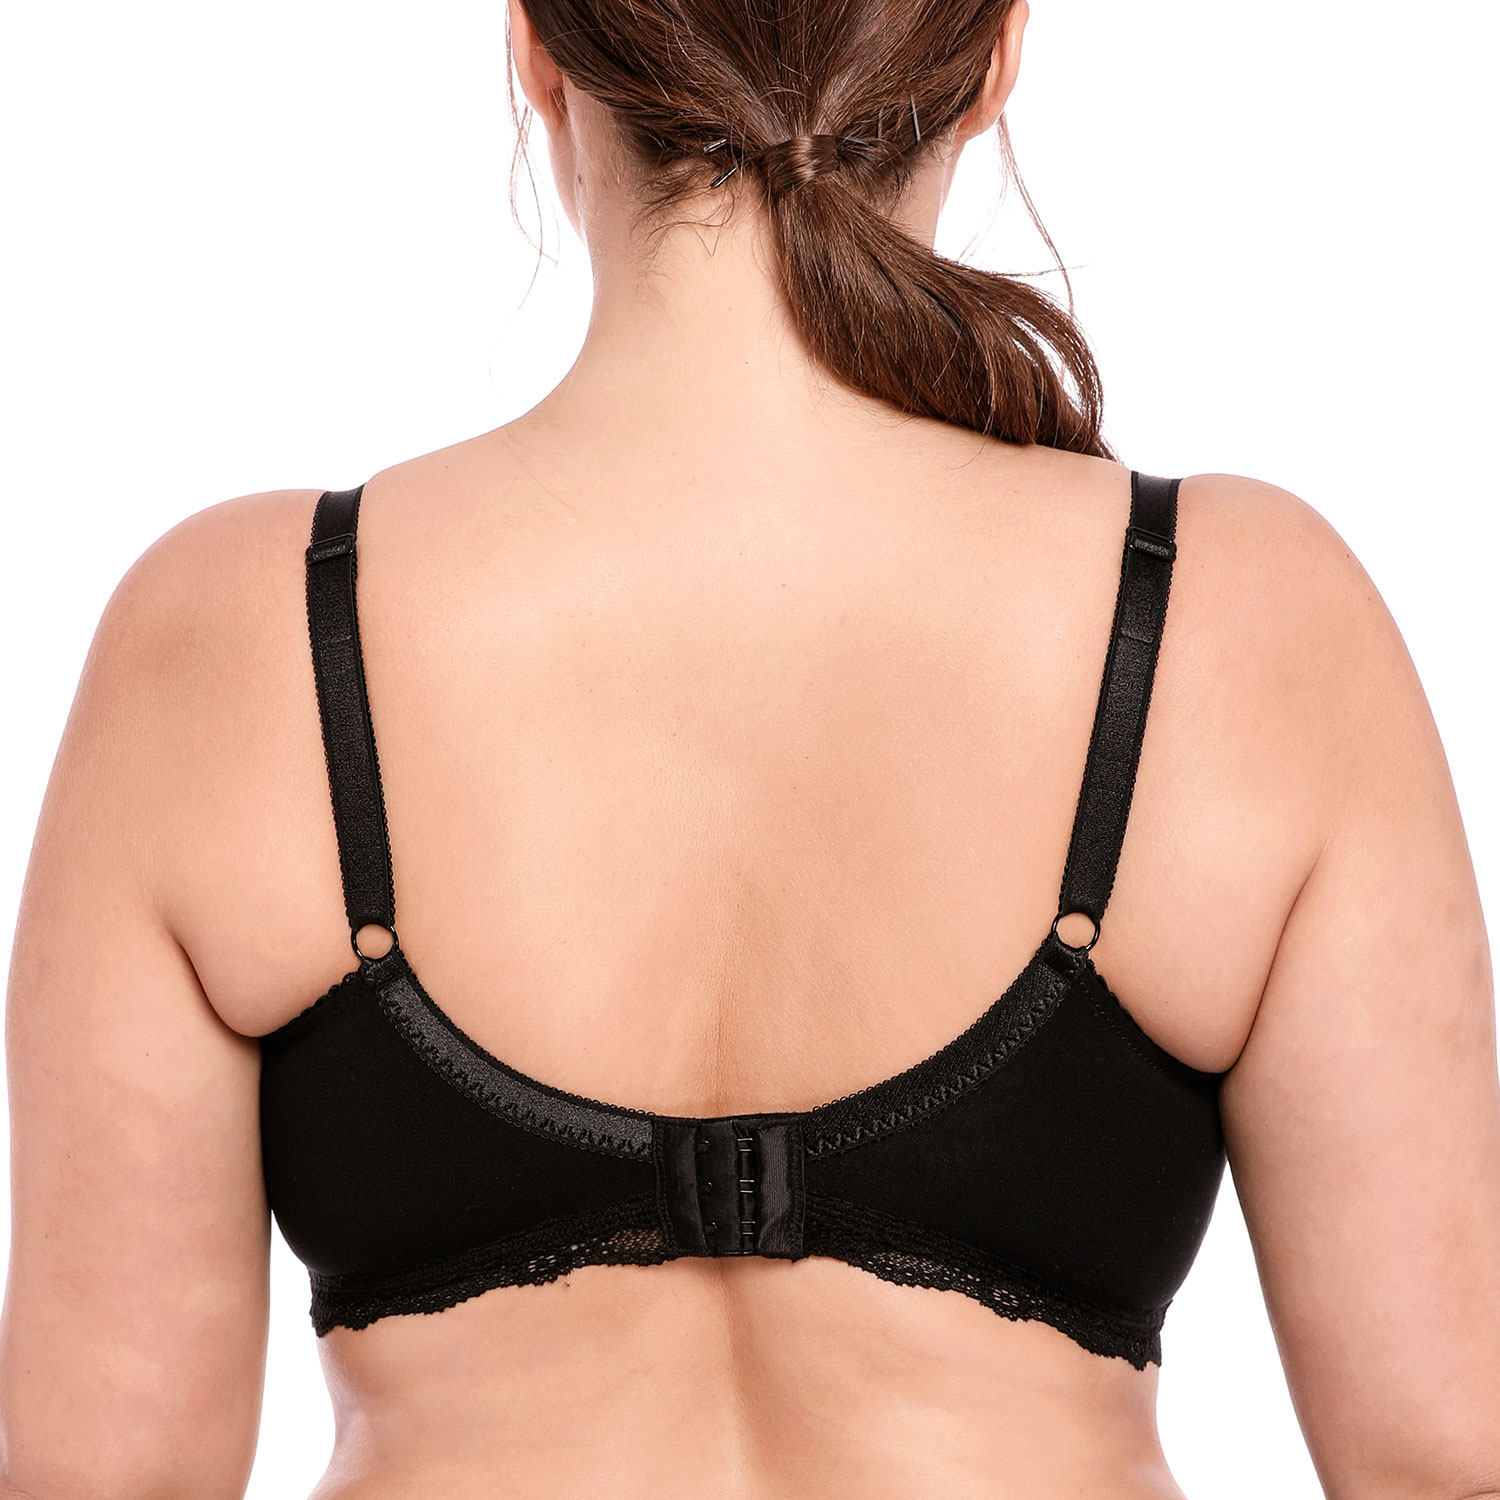 Women-039-s-Lace-Soft-Wirefree-Non-Padded-Full-Coverage-Cotton-Bra-Plus-Size thumbnail 5